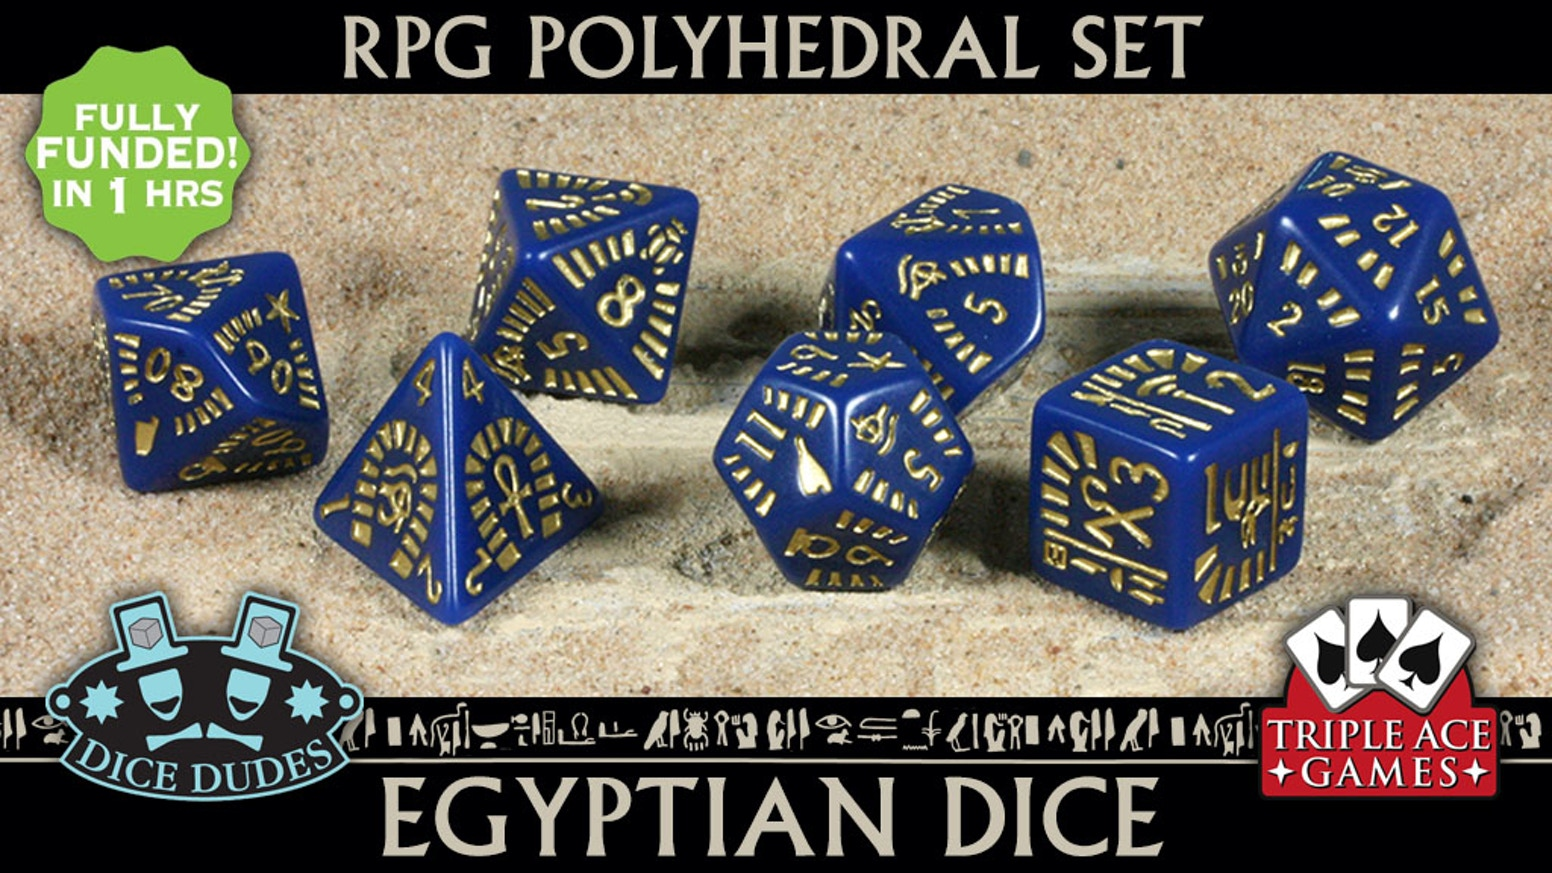 A beautifully crafted set of 7 Egyptian themed polyhedral dice for Egyptian themed tabletop games.